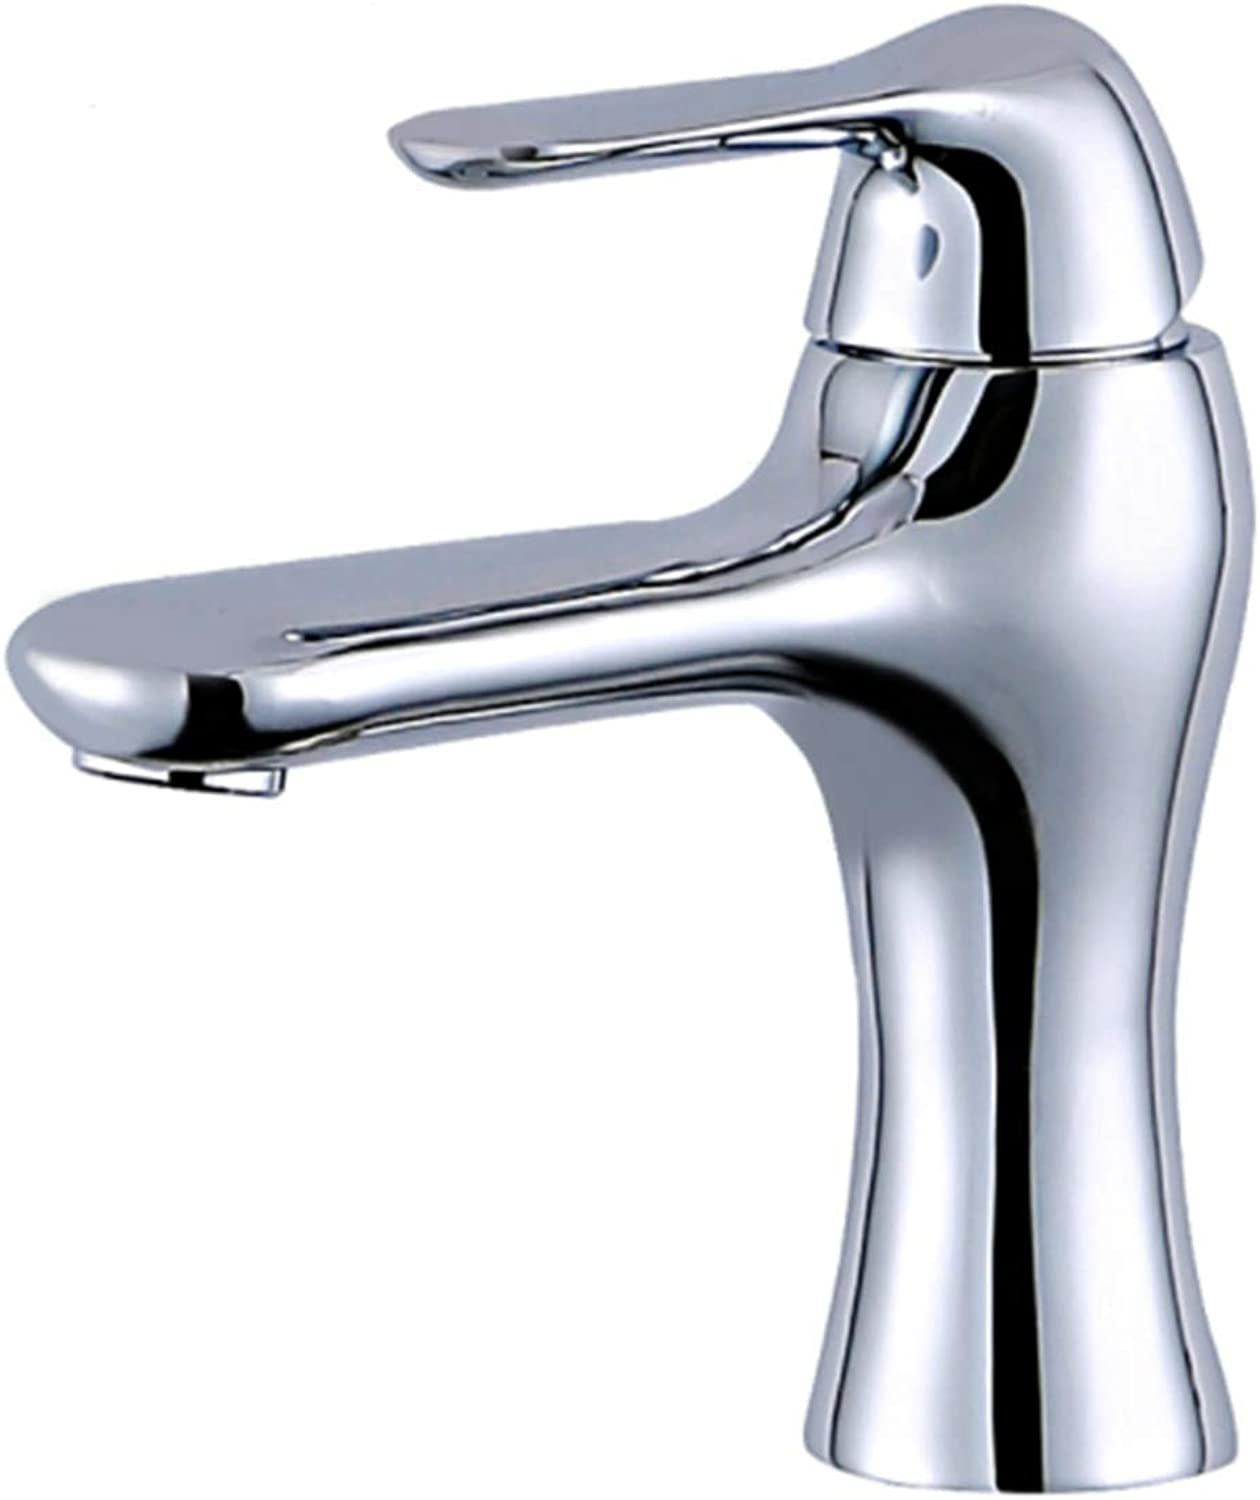 Taps Kitchen Basin Bathroom Washroombathroom Faucet Deck greenical Mounted Basin Chrome Sink Tap Vanity Brass Hot Cold Water Faucet White Painting Tap